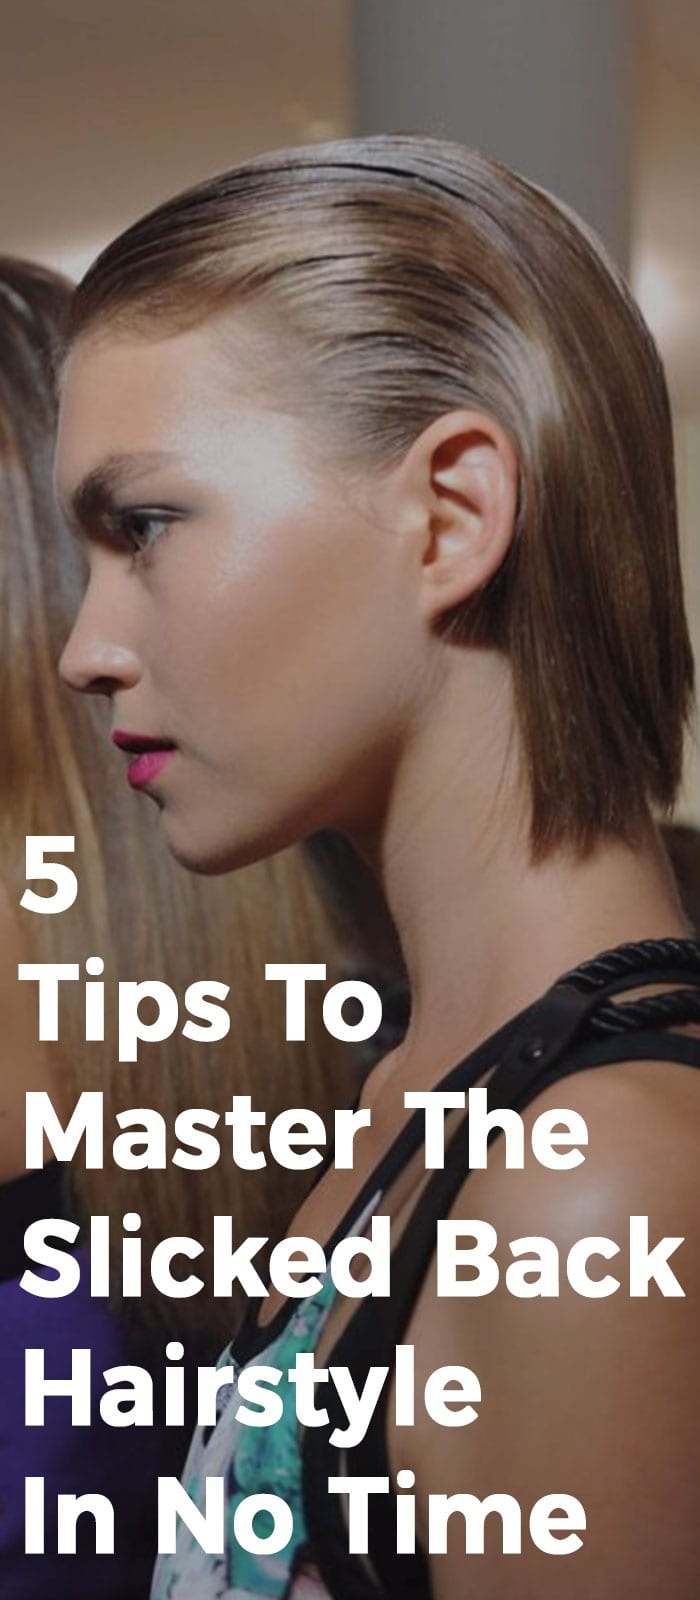 5 Tips To Master The Slicked Back Hairstyle In No Time